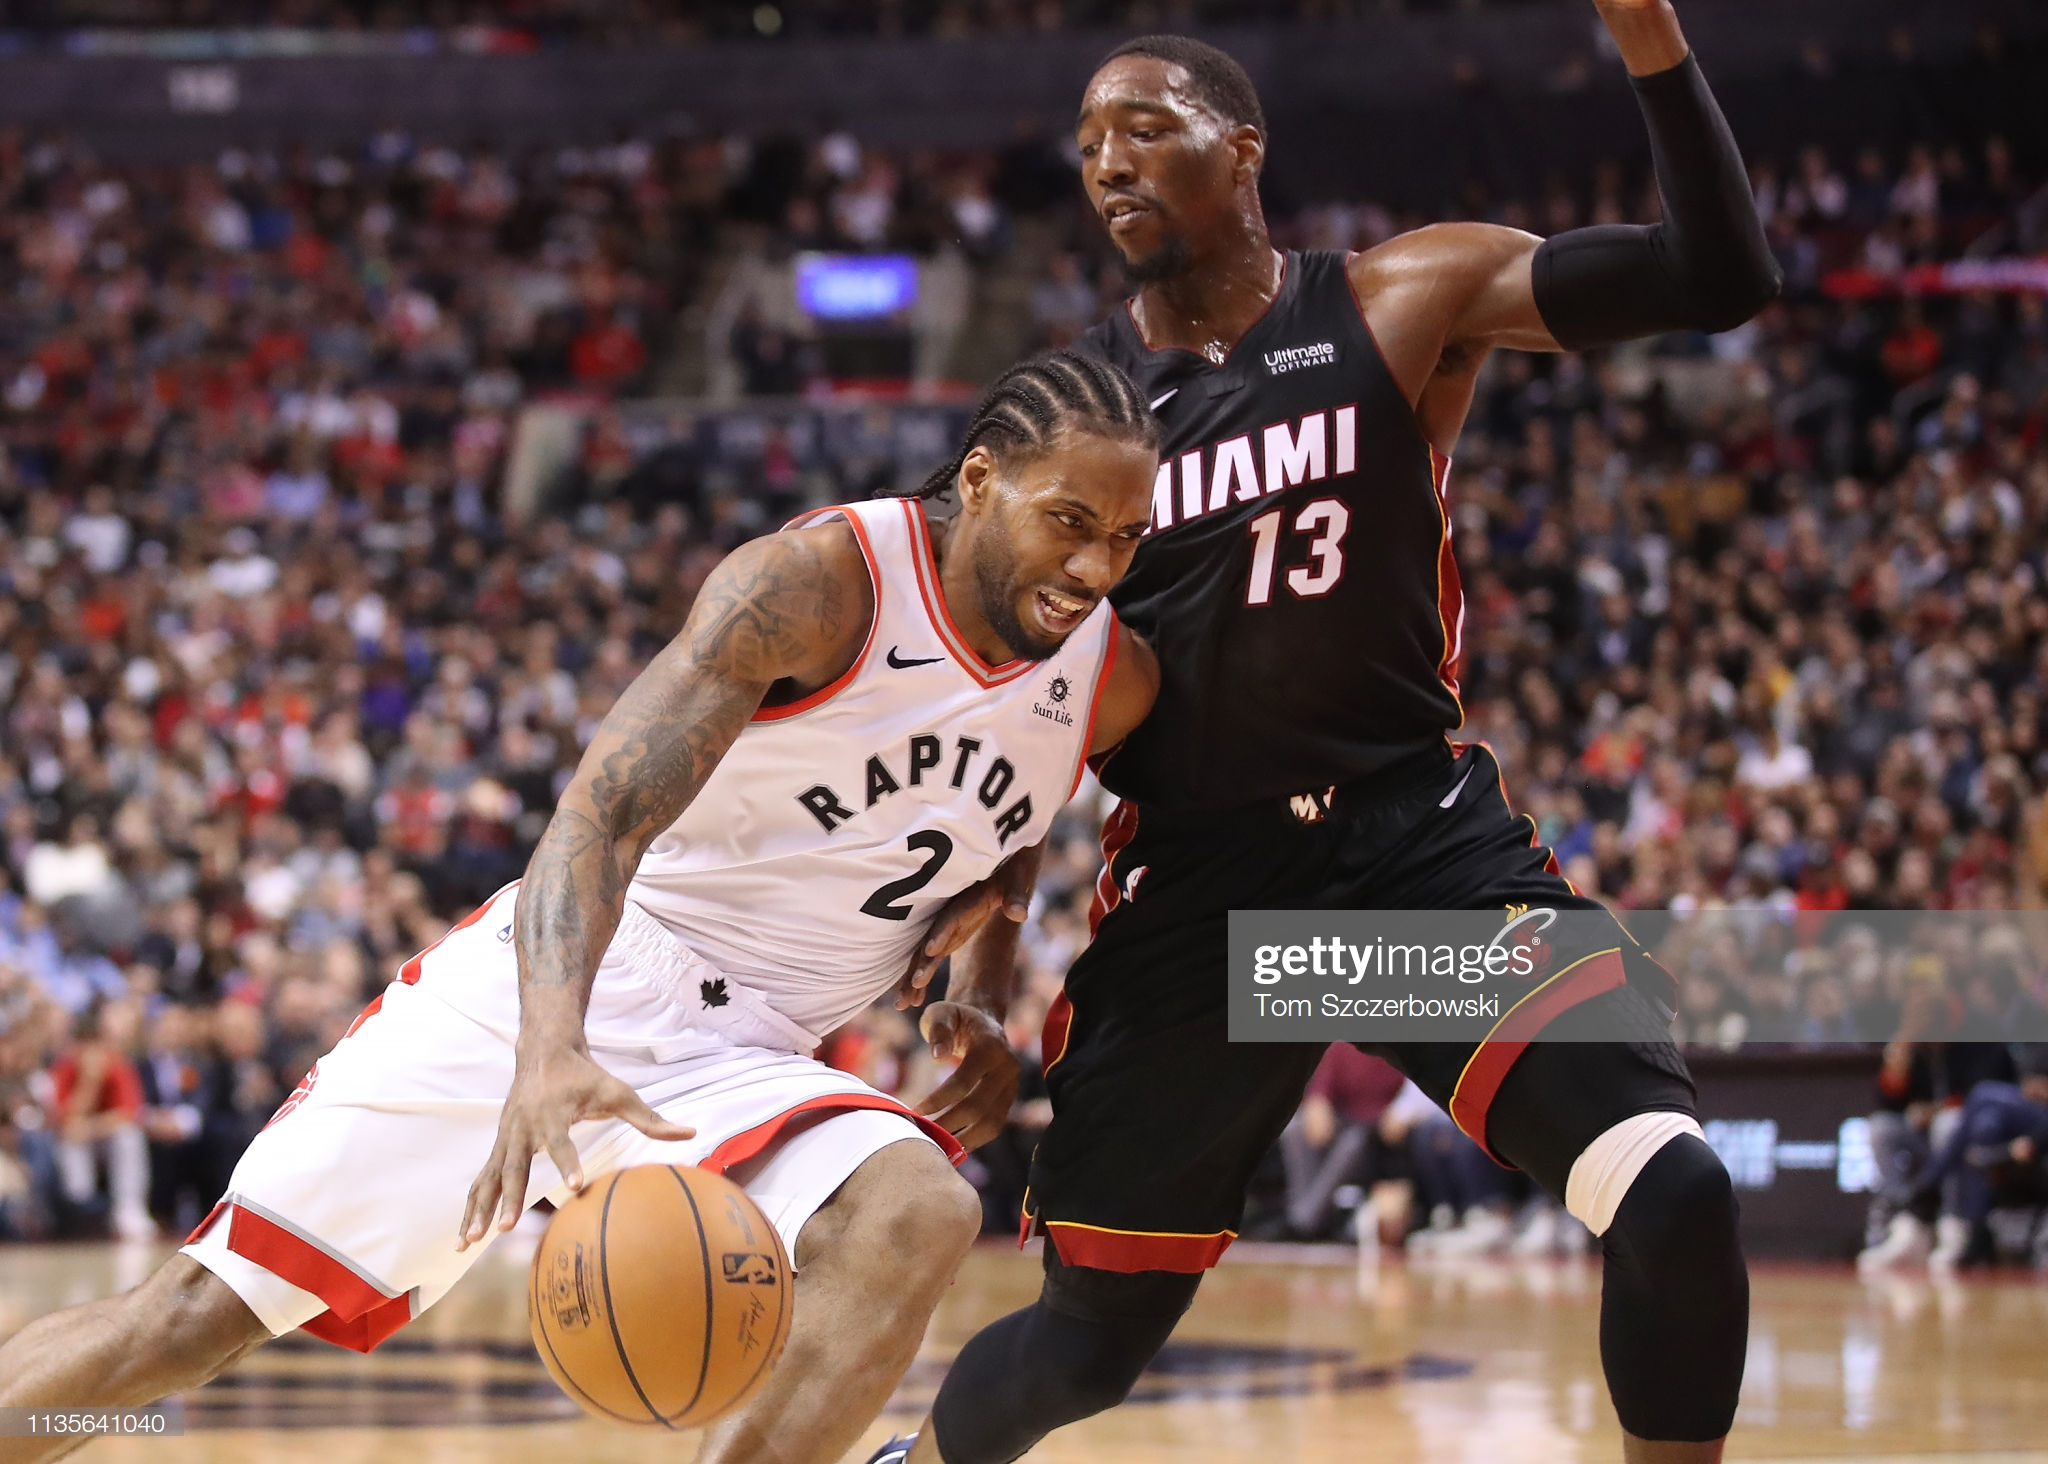 TORONTO, ON - APRIL 07: Kawhi Leonard #2 of the Toronto Raptors drives to the basket in the fourth quarter against Bam Adebayo #13 of the Miami Heat at Scotiabank Arena on April 7, 2019 in Toronto, Canada. NOTE TO USER: User expressly acknowledges and agrees that, by downloading and or using this photograph, User is consenting to the terms and conditions of the Getty Images License Agreement. (Photo by Tom Szczerbowski/Getty Images)